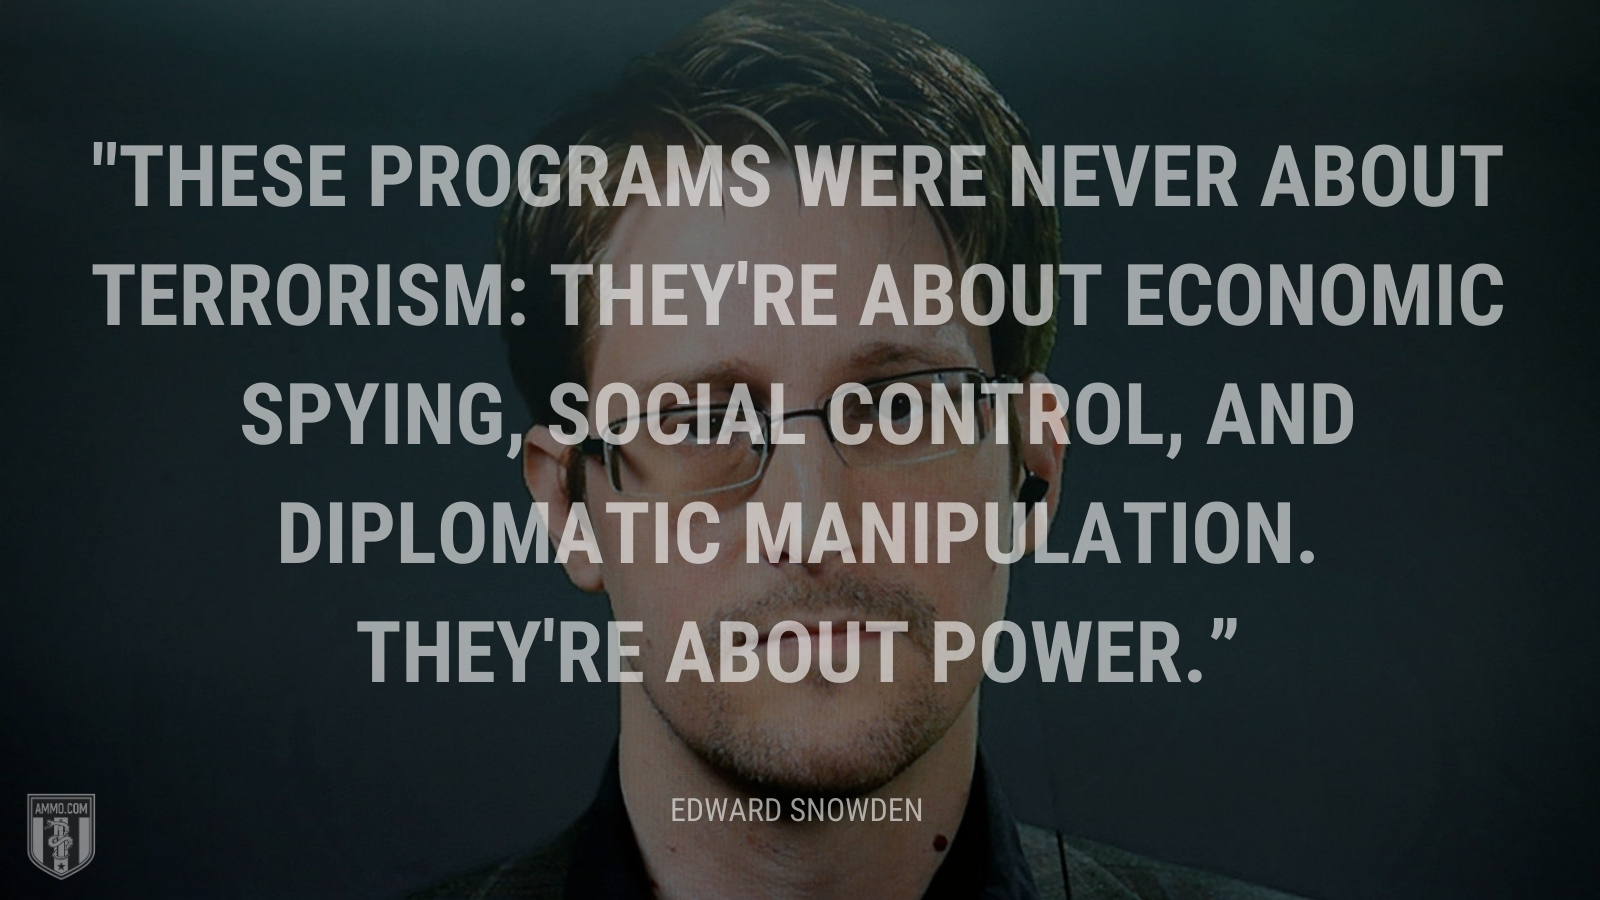 """""""These programs were never about terrorism: they're about economic spying, social control, and diplomatic manipulation. They're about power."""" - Edward Snowden"""